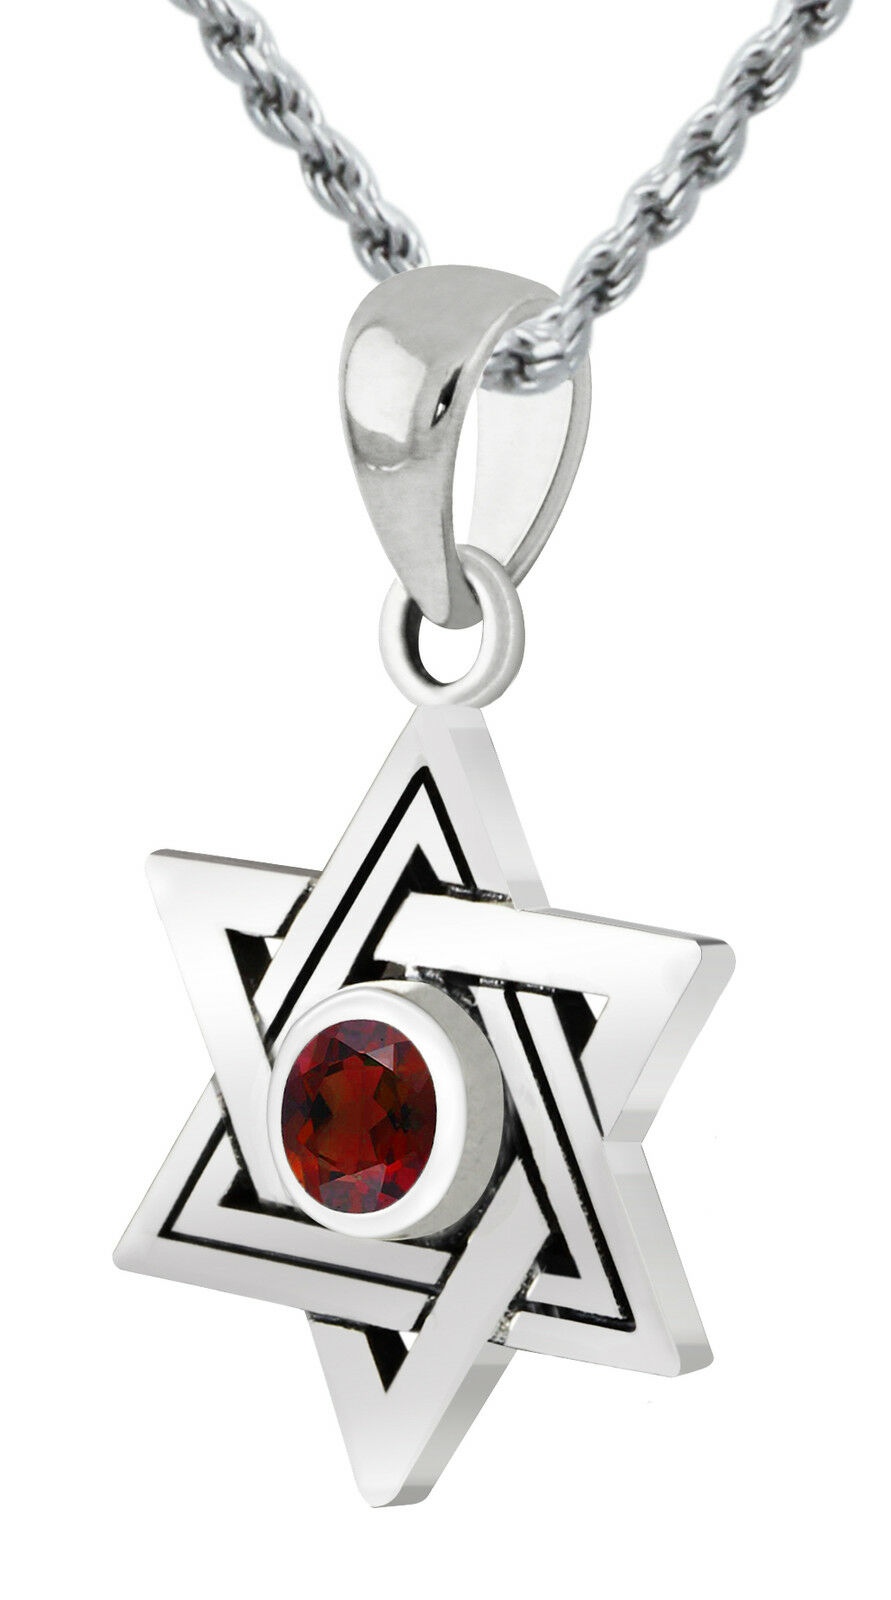 New 0.925 Sterling Silver Star of David Jewish Pendant